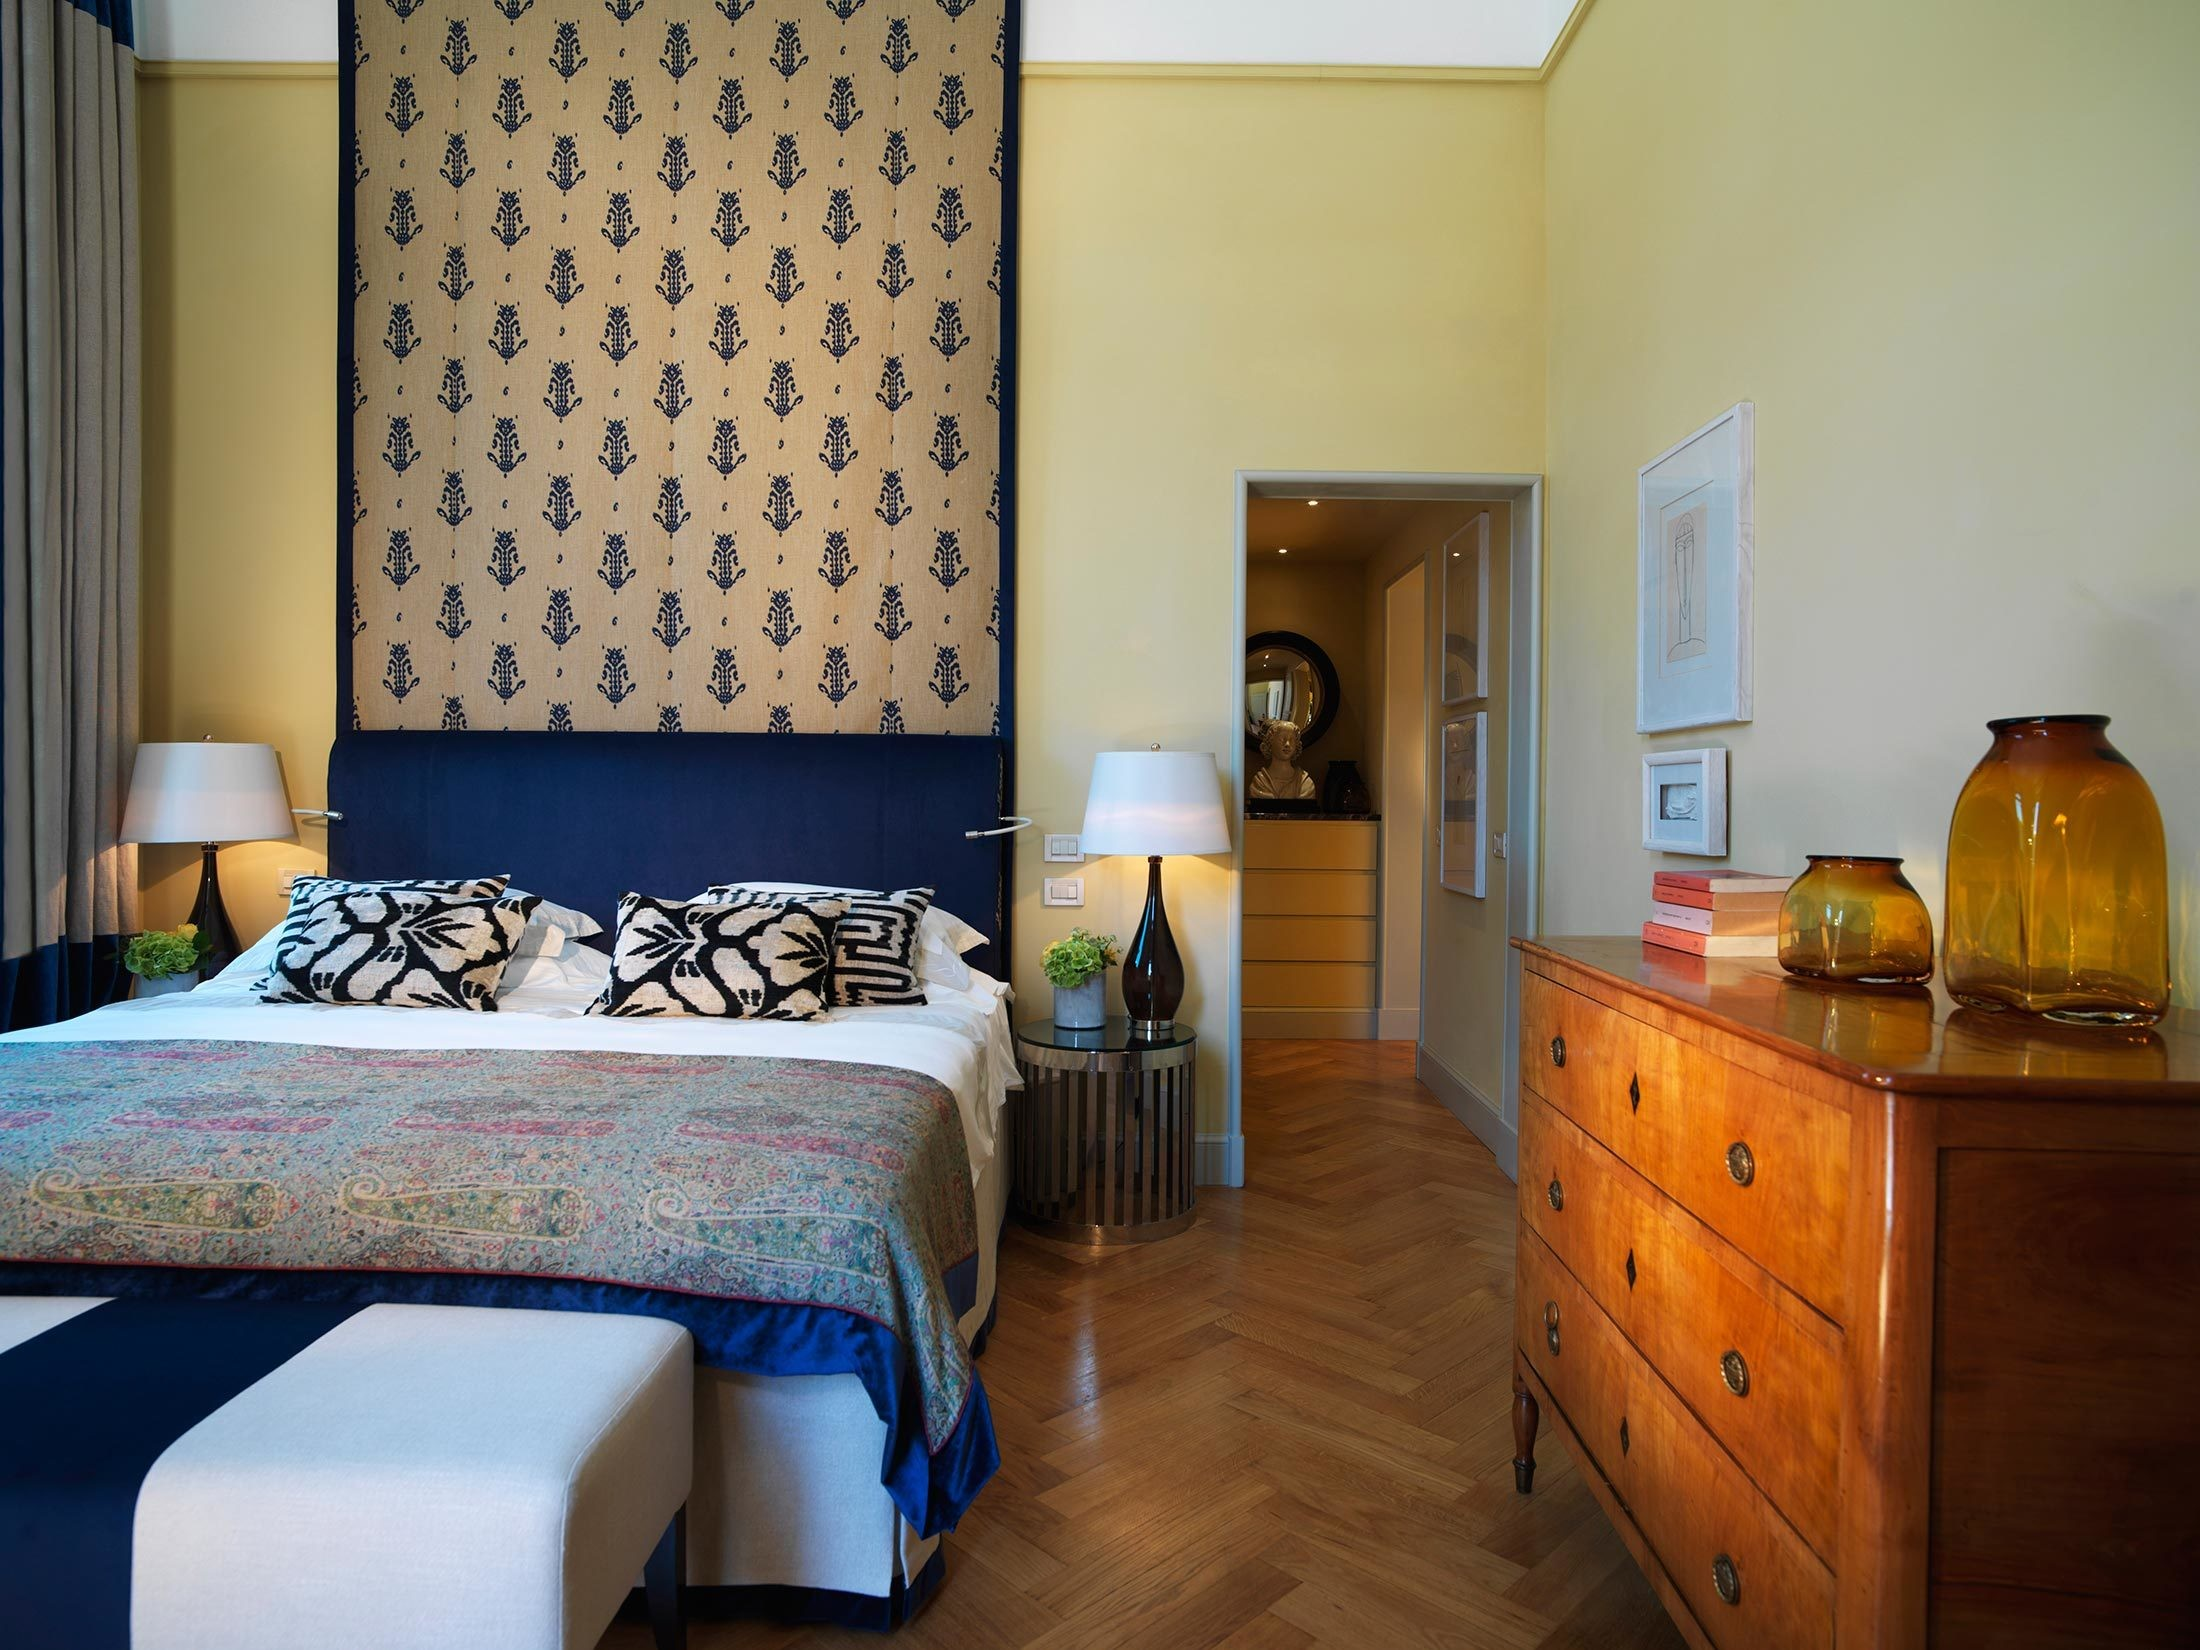 Hotel Savoy, Emilio Pucci, brand, interior, Duomo Presidential Suite, Chelini Firenze, Il Bronzetto, Savoy, Piazza della Repubblica, Ponte Vecchue Bridge, Uffizi Gallery, Laudomia Pucci, the Cathedral, Hotel Savoy in Florence, hotel savoy in florence italy, hotel savoy florence booking com